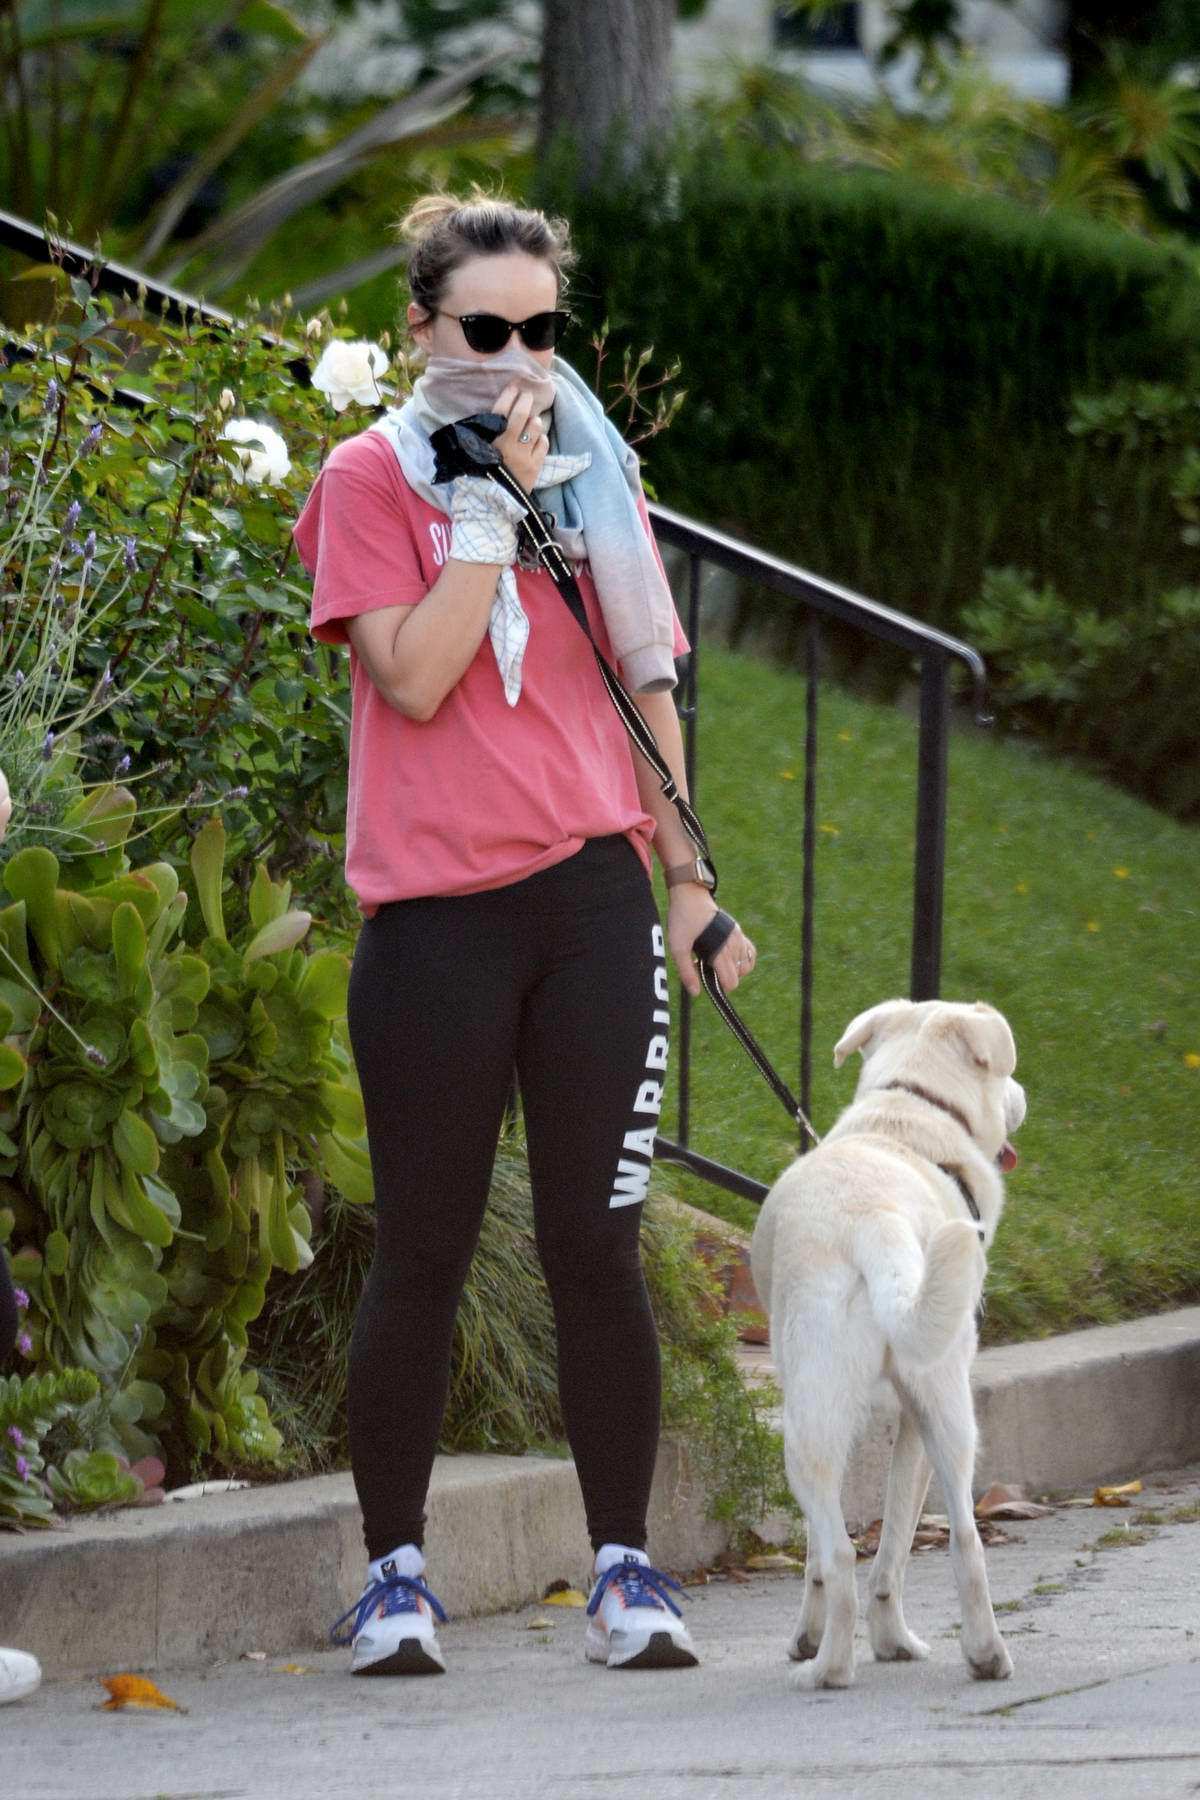 Olivia Wilde covers her face with a shirt while out for a stroll with her dog in Los Angeles